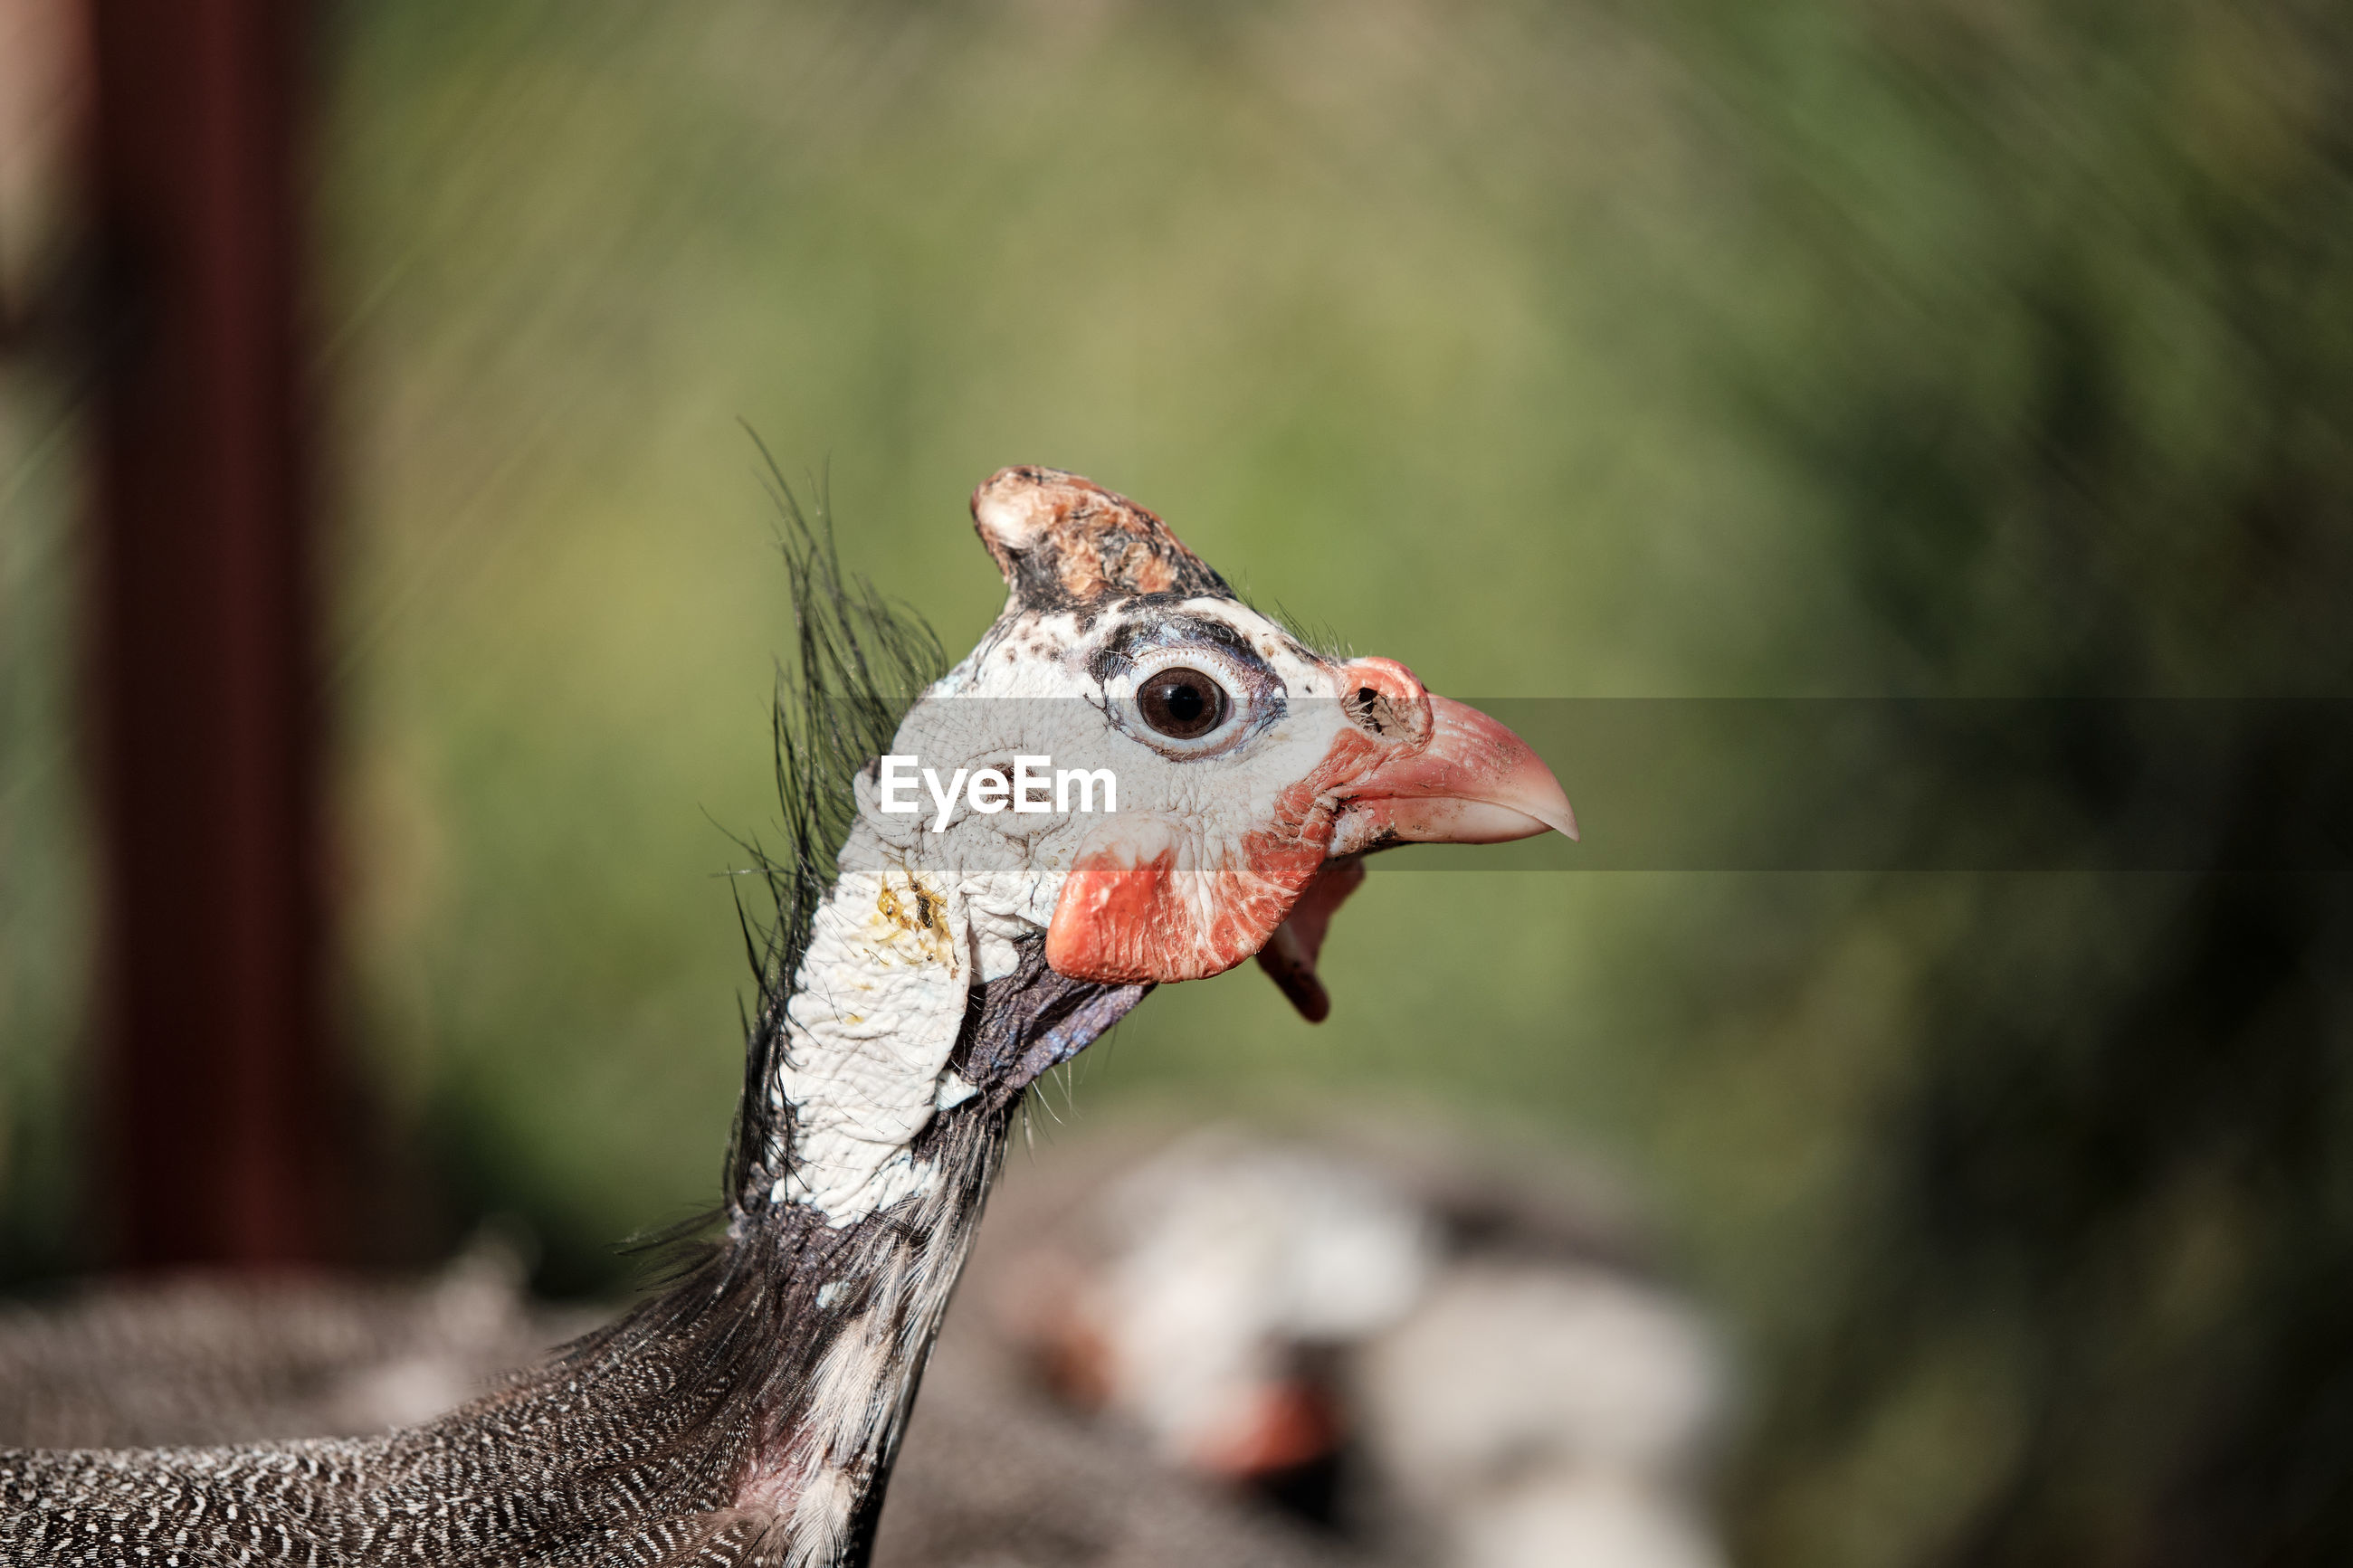 Featherless turkey chick on the depth background